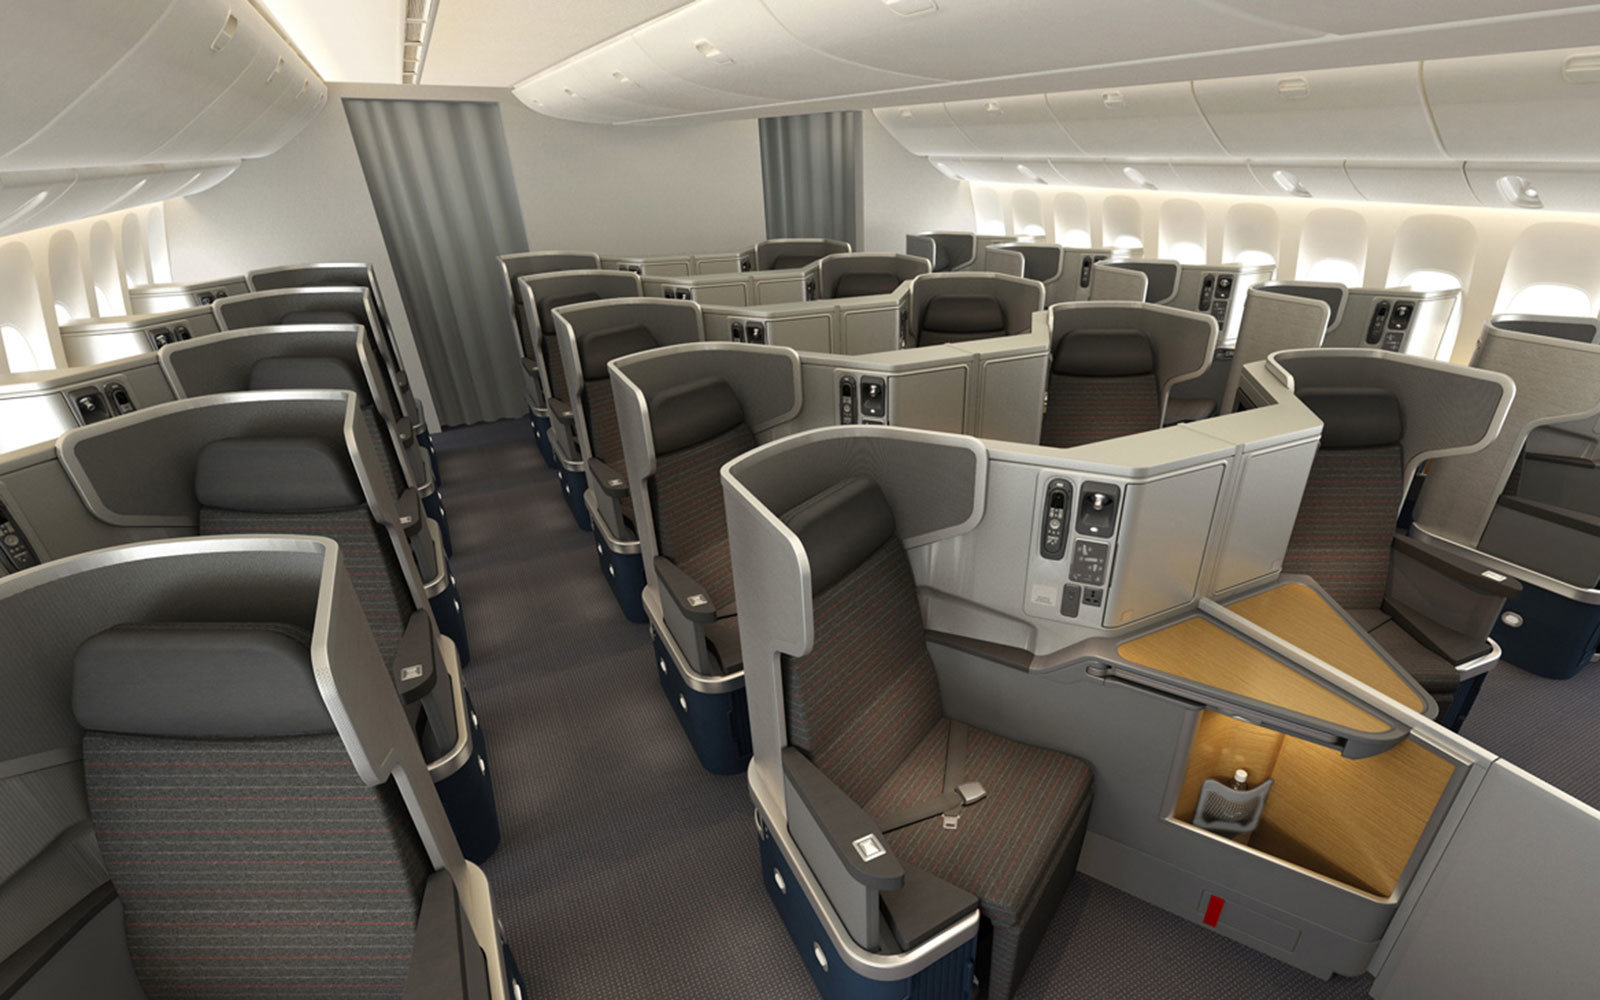 American Airlines business class for economy